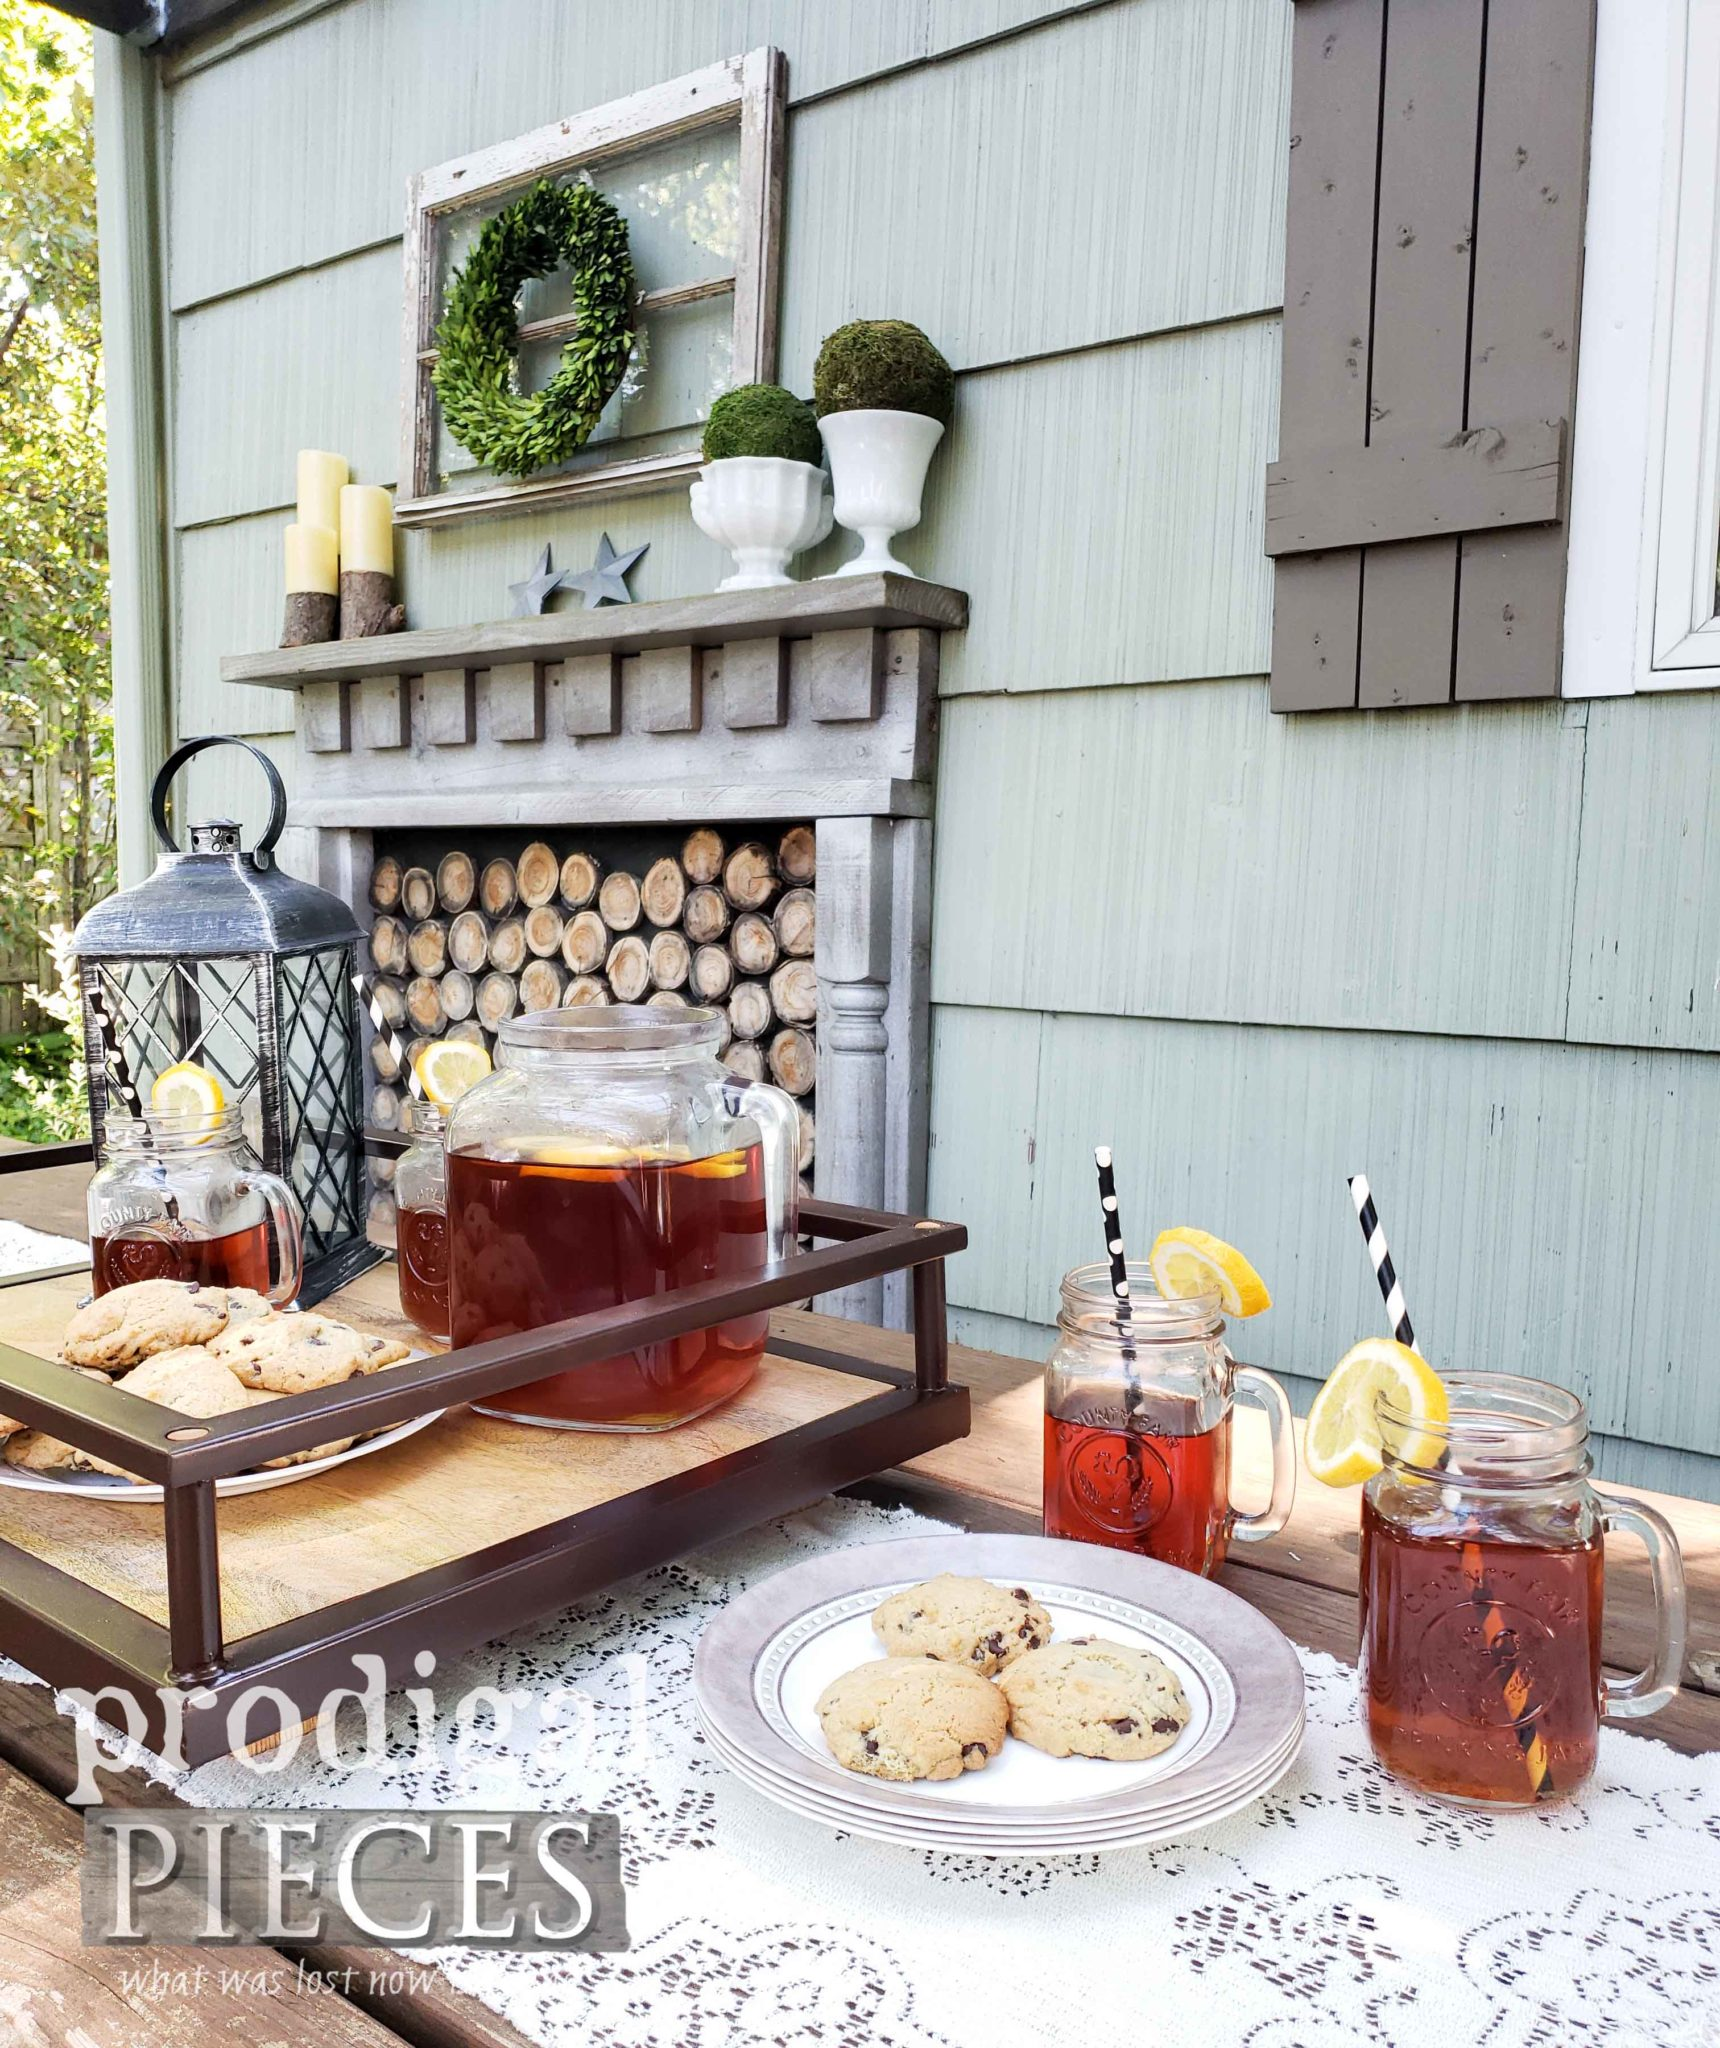 Create your own upcycled outdoor decor with tutorials by Larissa of Prodigal Pieces | prodigalpieces.com #prodigalpieces #diy #home #outdoor #patio #homedecor #farmhouse